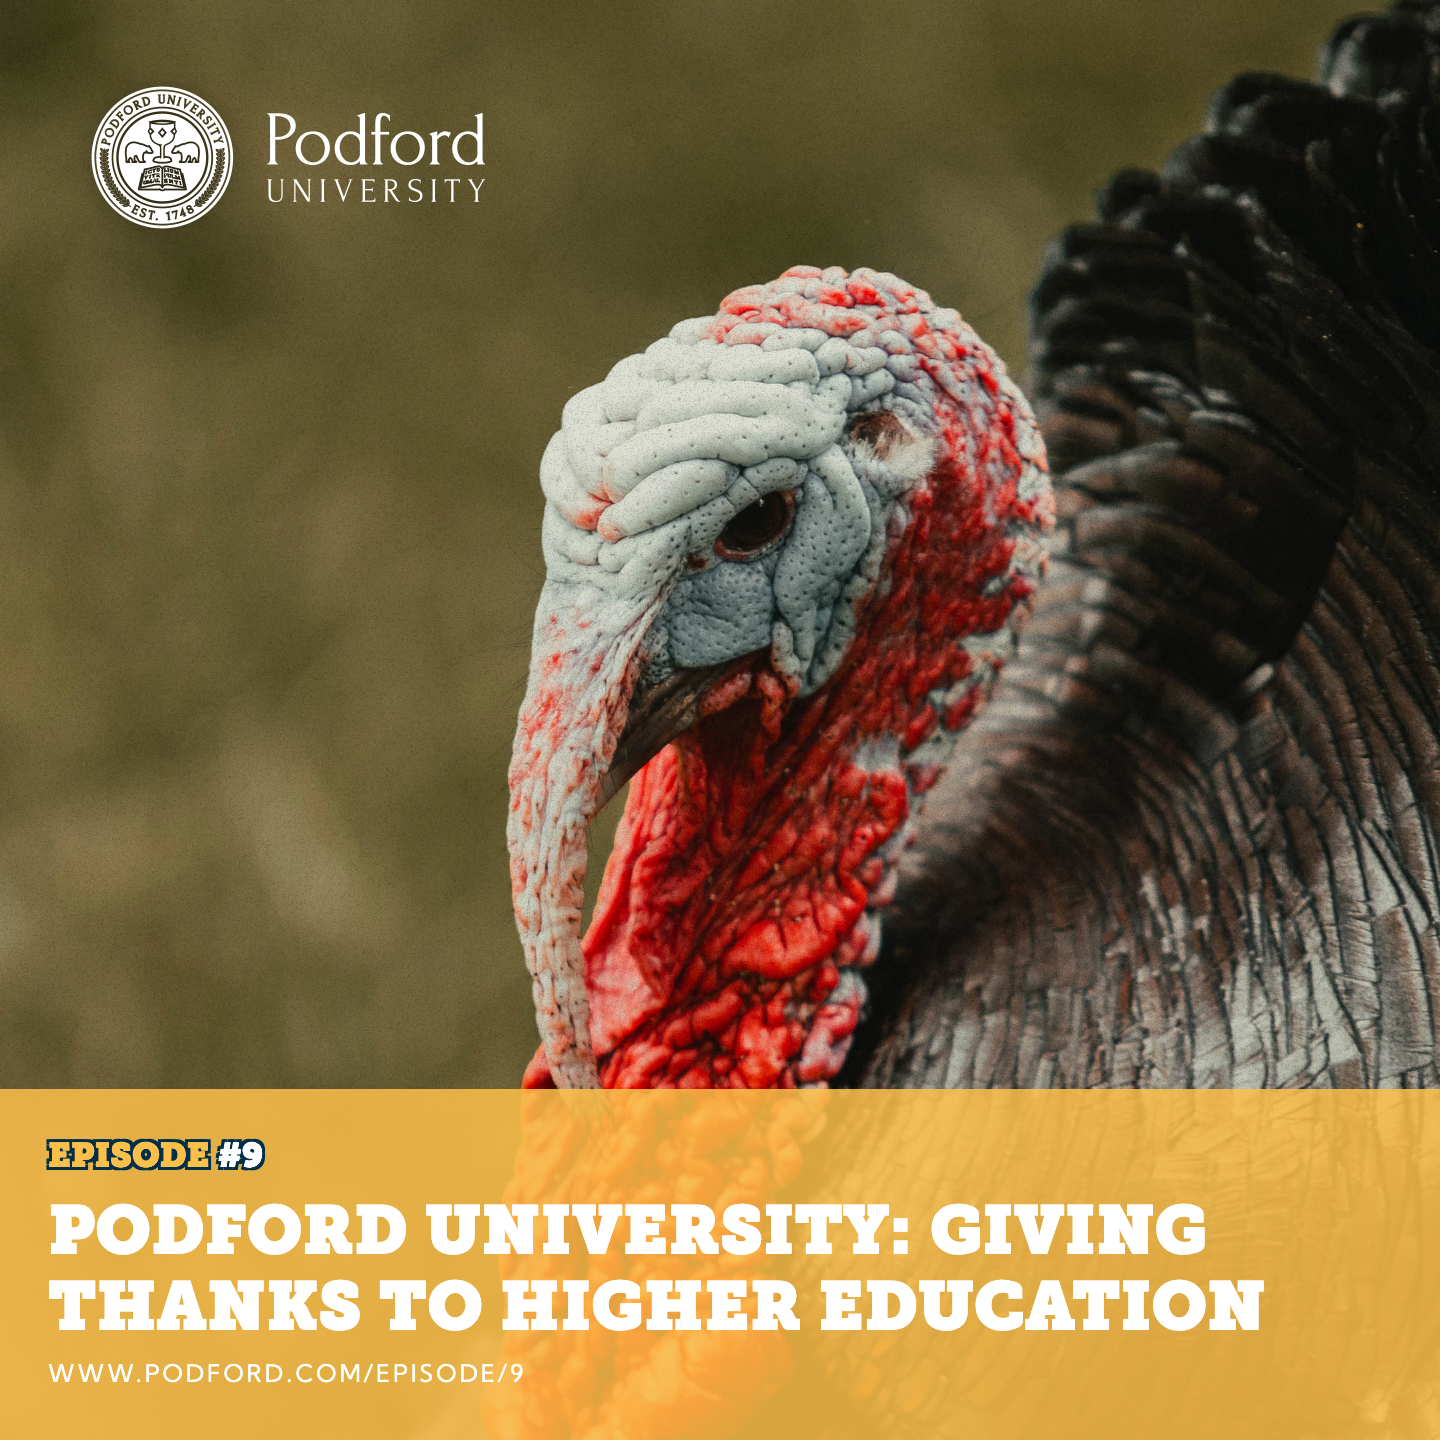 Podford University: Giving Thanks to Higher Education